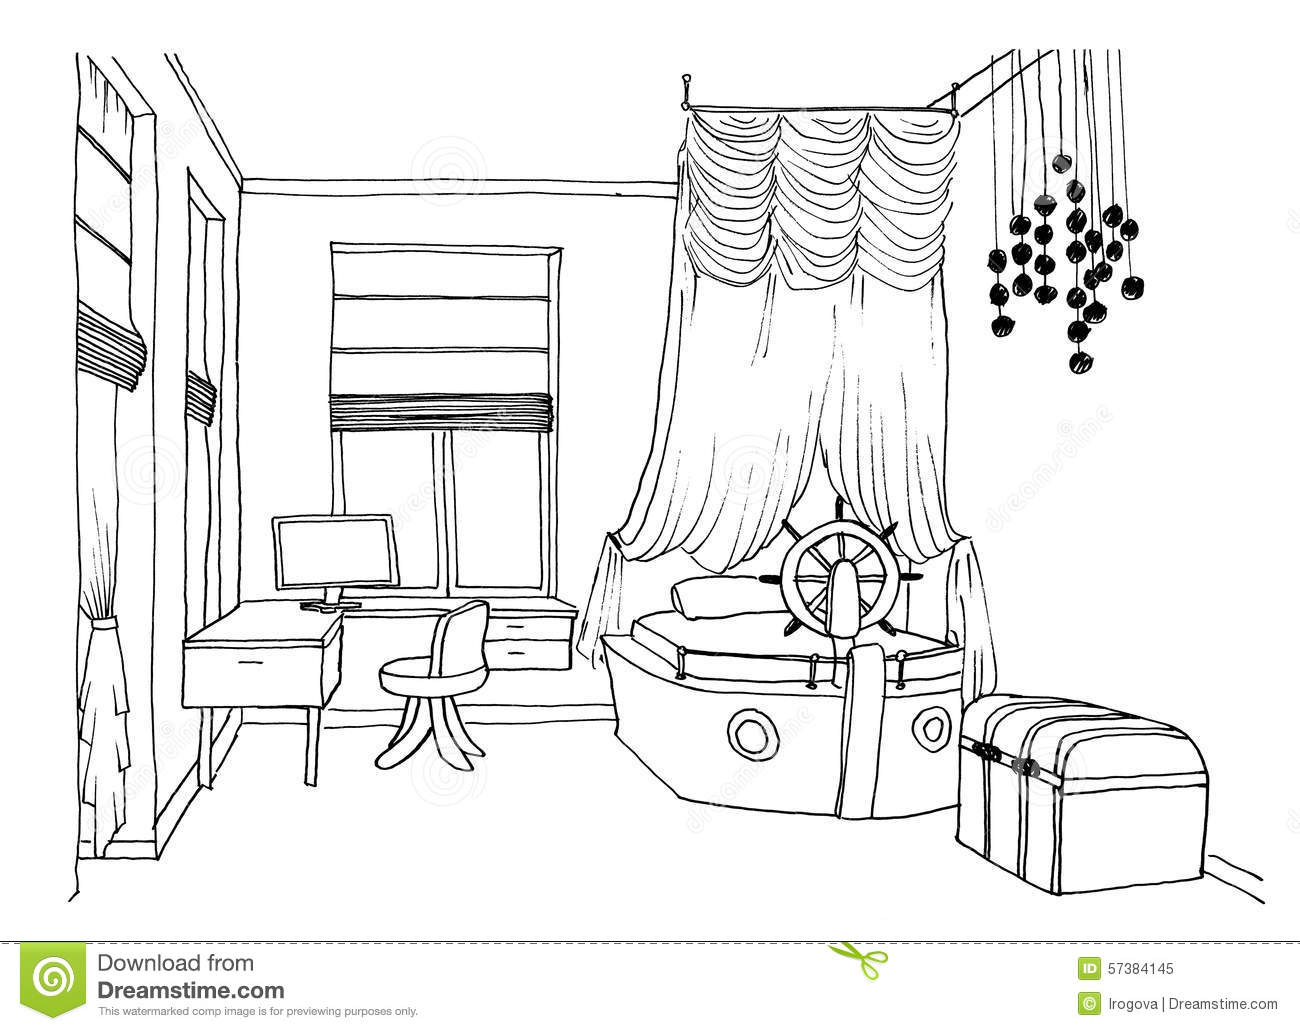 Kids Bedroom Drawing kids room graphical sketch stock illustration - image: 57384145